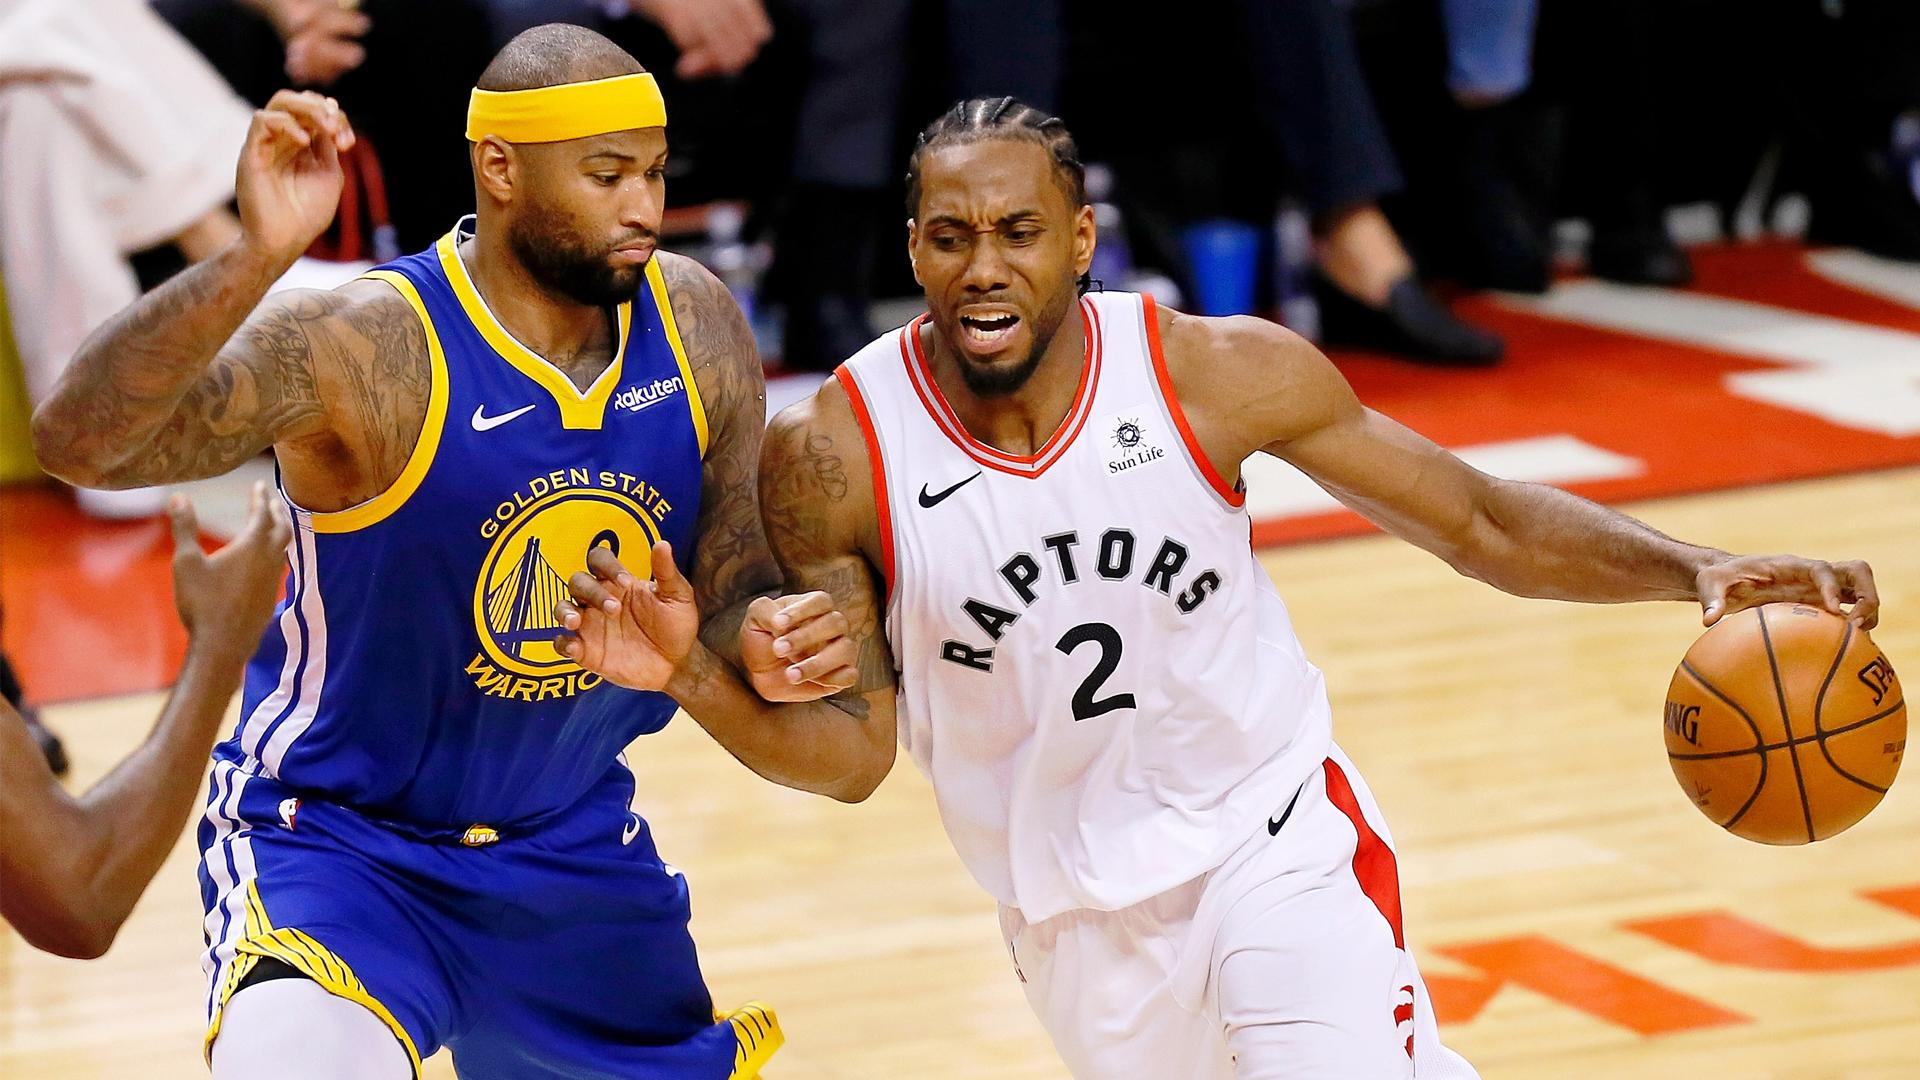 Why DeMarcus Cousins could re-sign with the Warriors in free agency